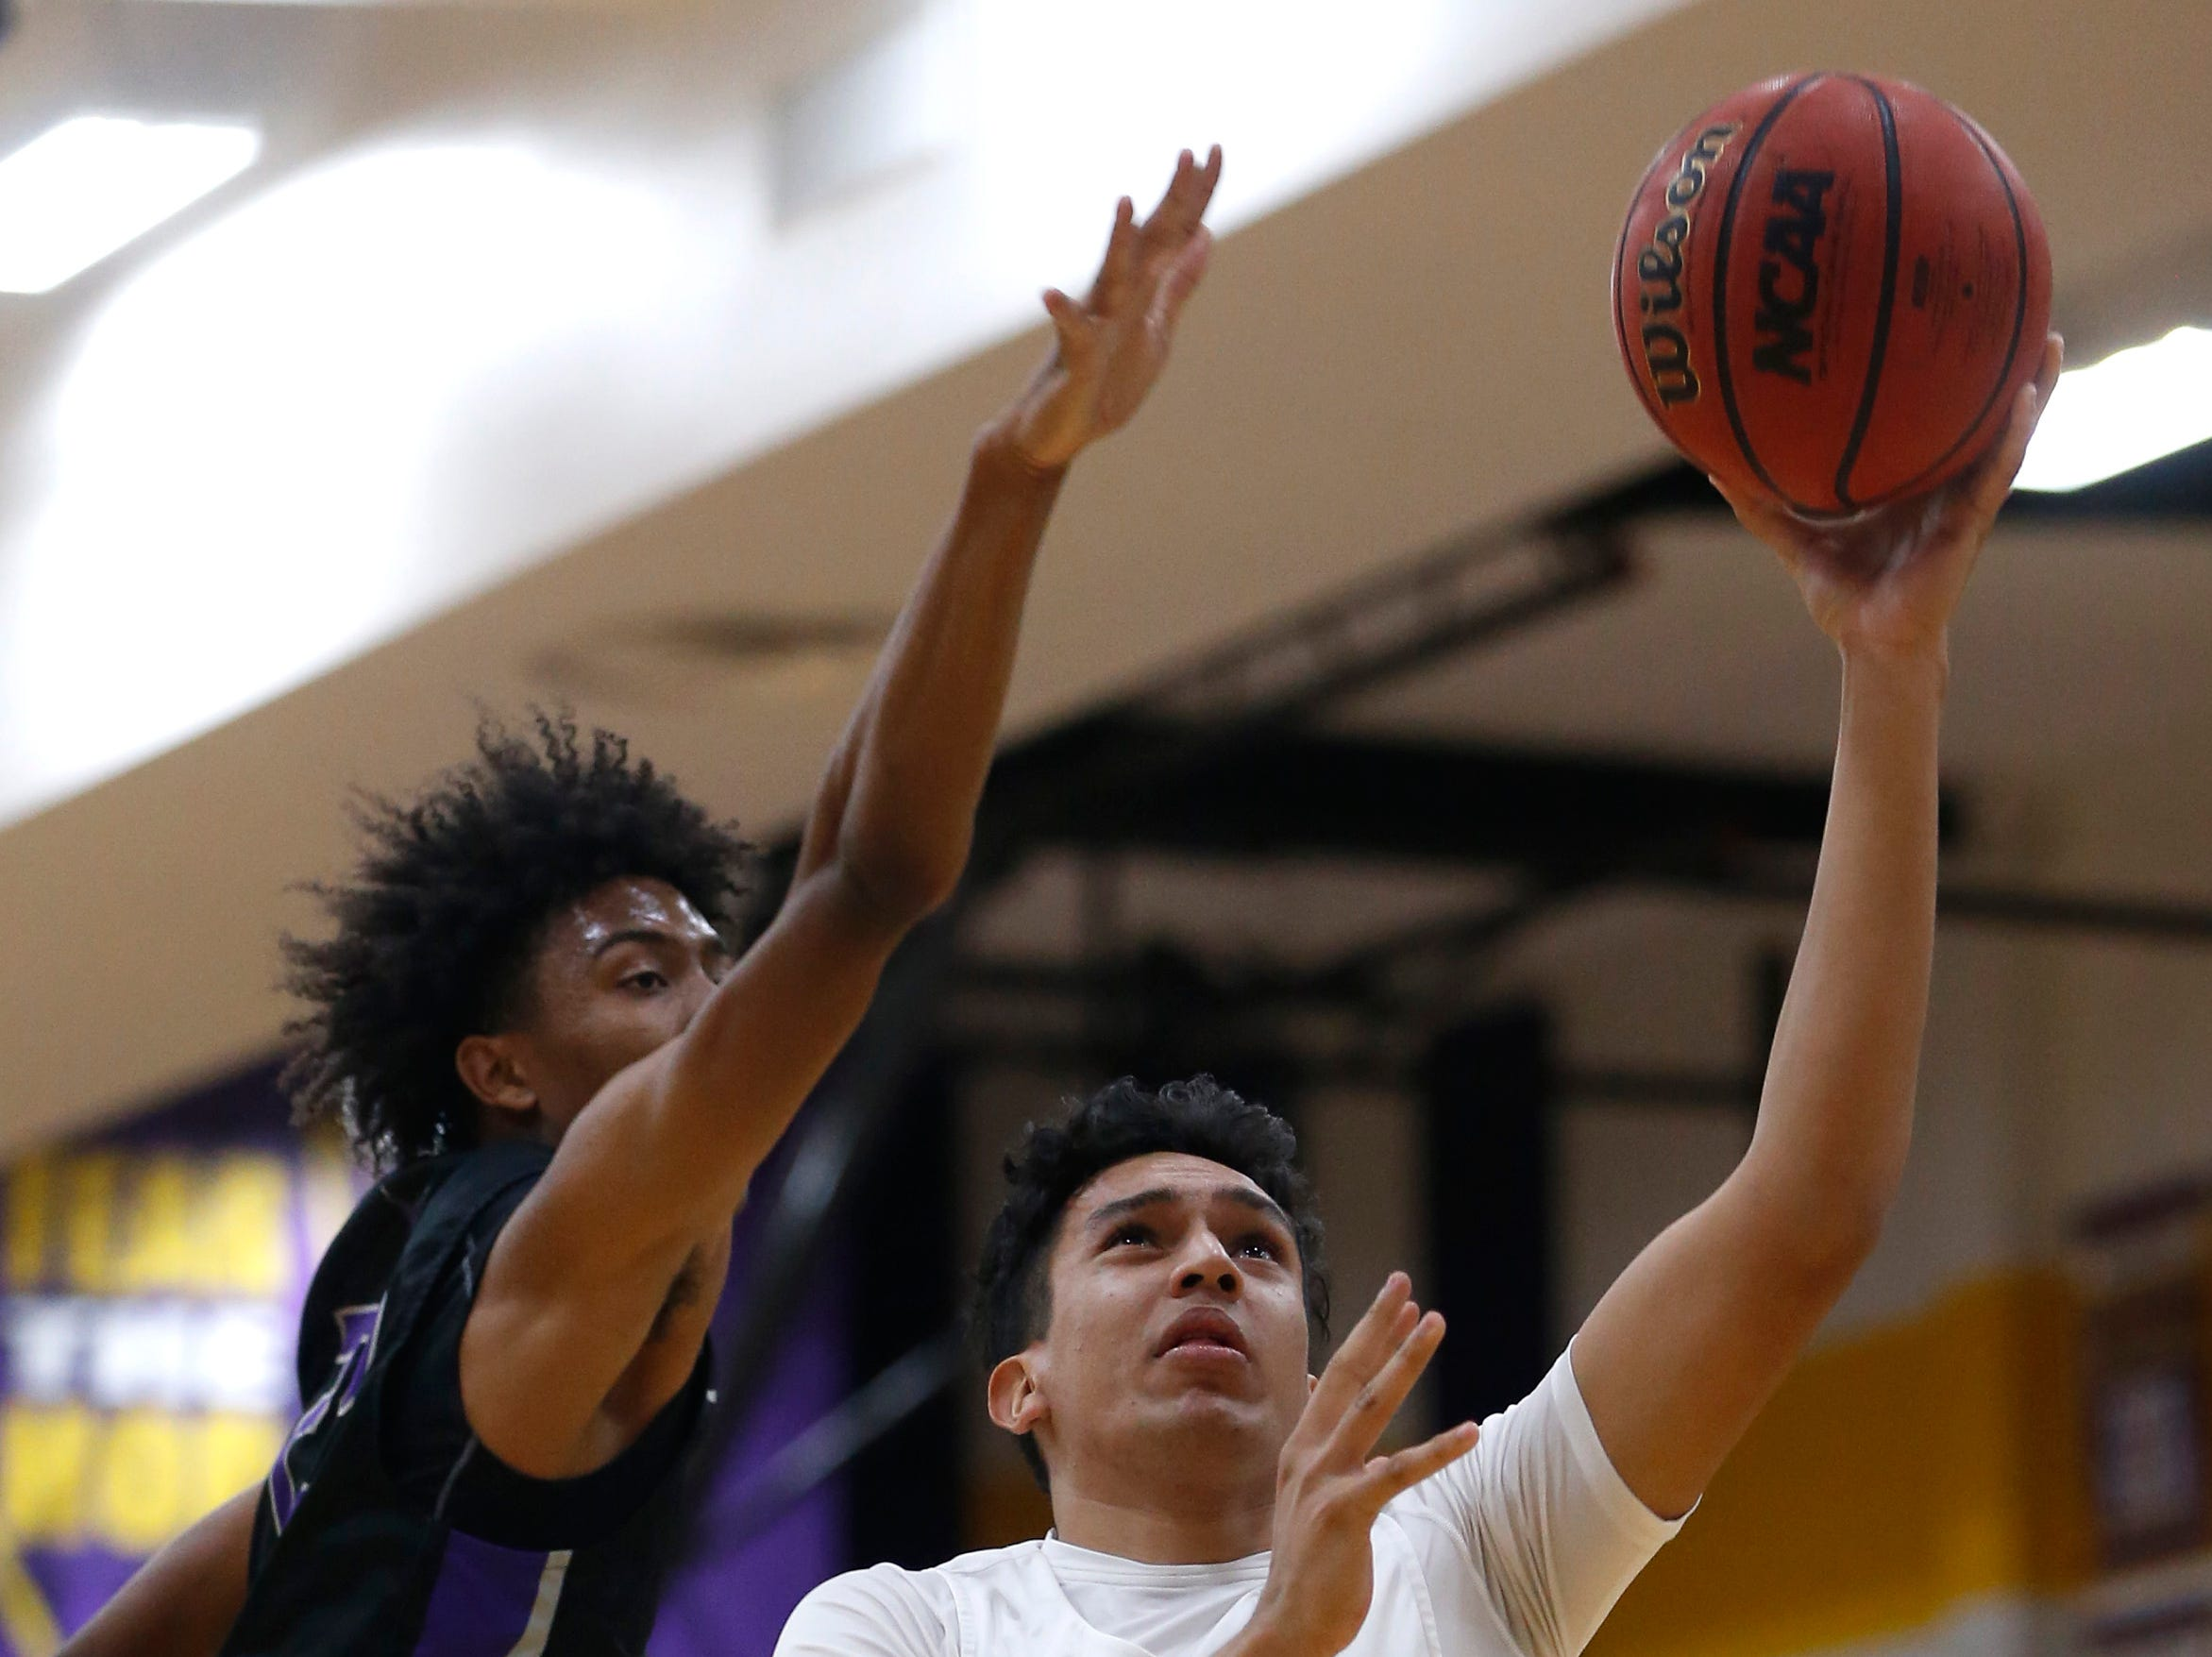 Mesa's Jesus Velazco (43) makes a layup past Valley Vista's Curtis Nichols (22) during the first half of the boys basketball tournament play-in game at Mesa High School in Mesa, Ariz. on February 8, 2019.